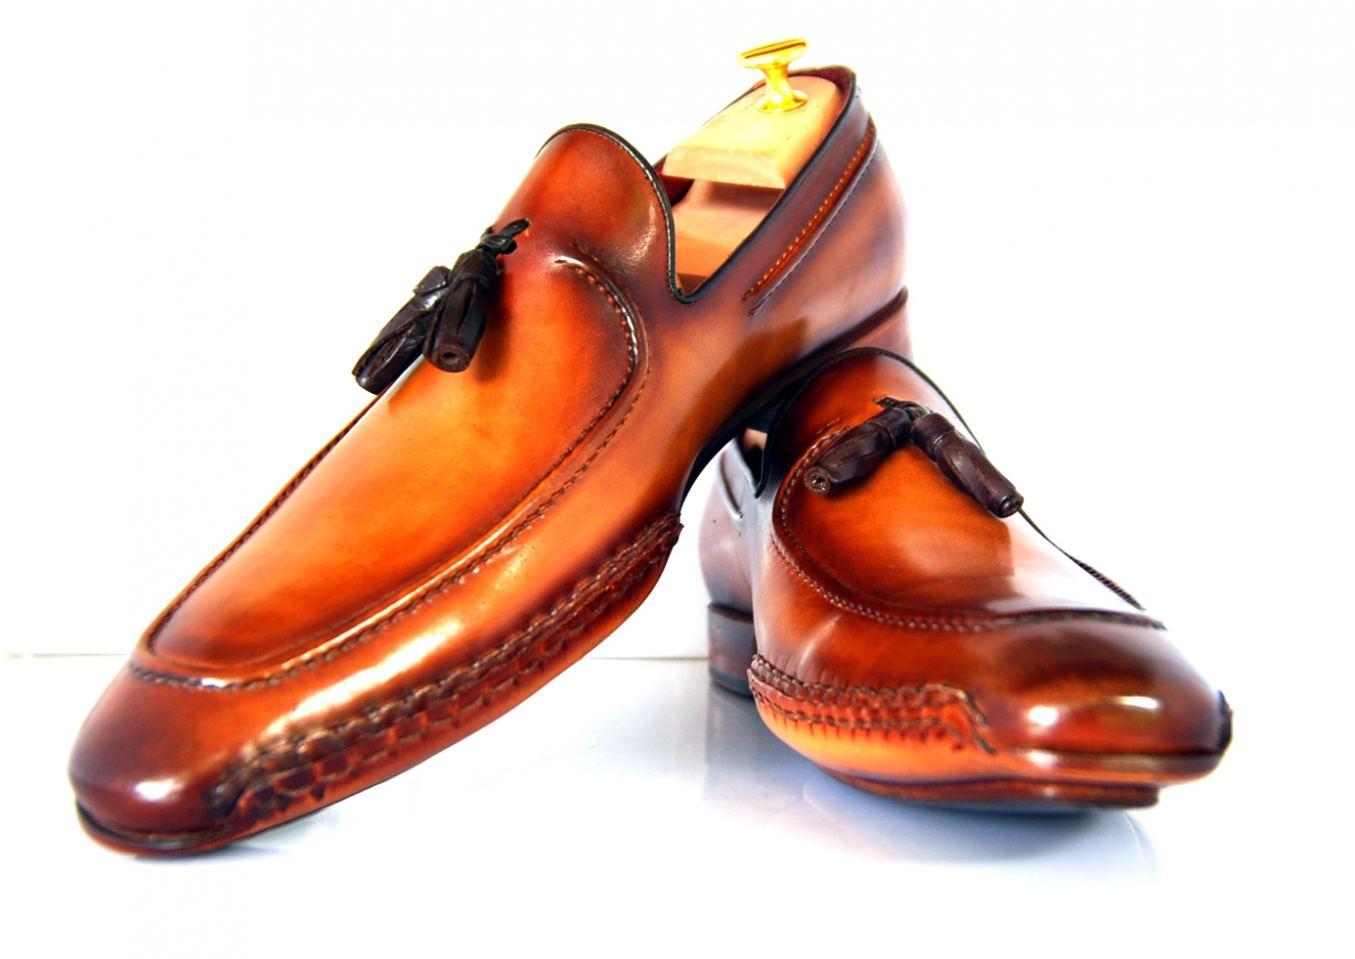 Italian Design Gifts Industry Expert Says Handmade Italian Shoes Are Nice